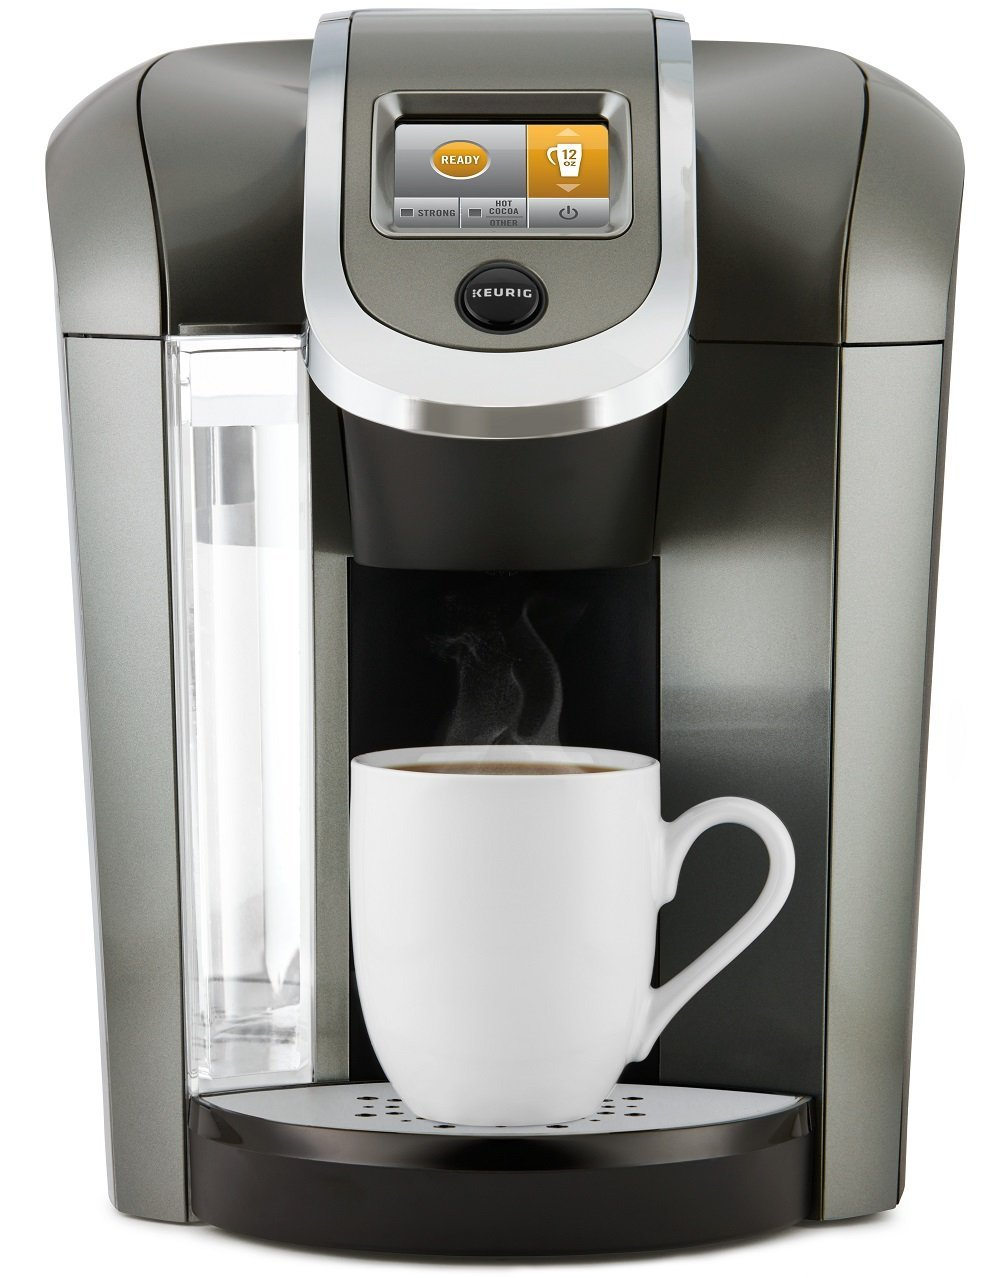 Keurig Coffee Maker - Single Serve